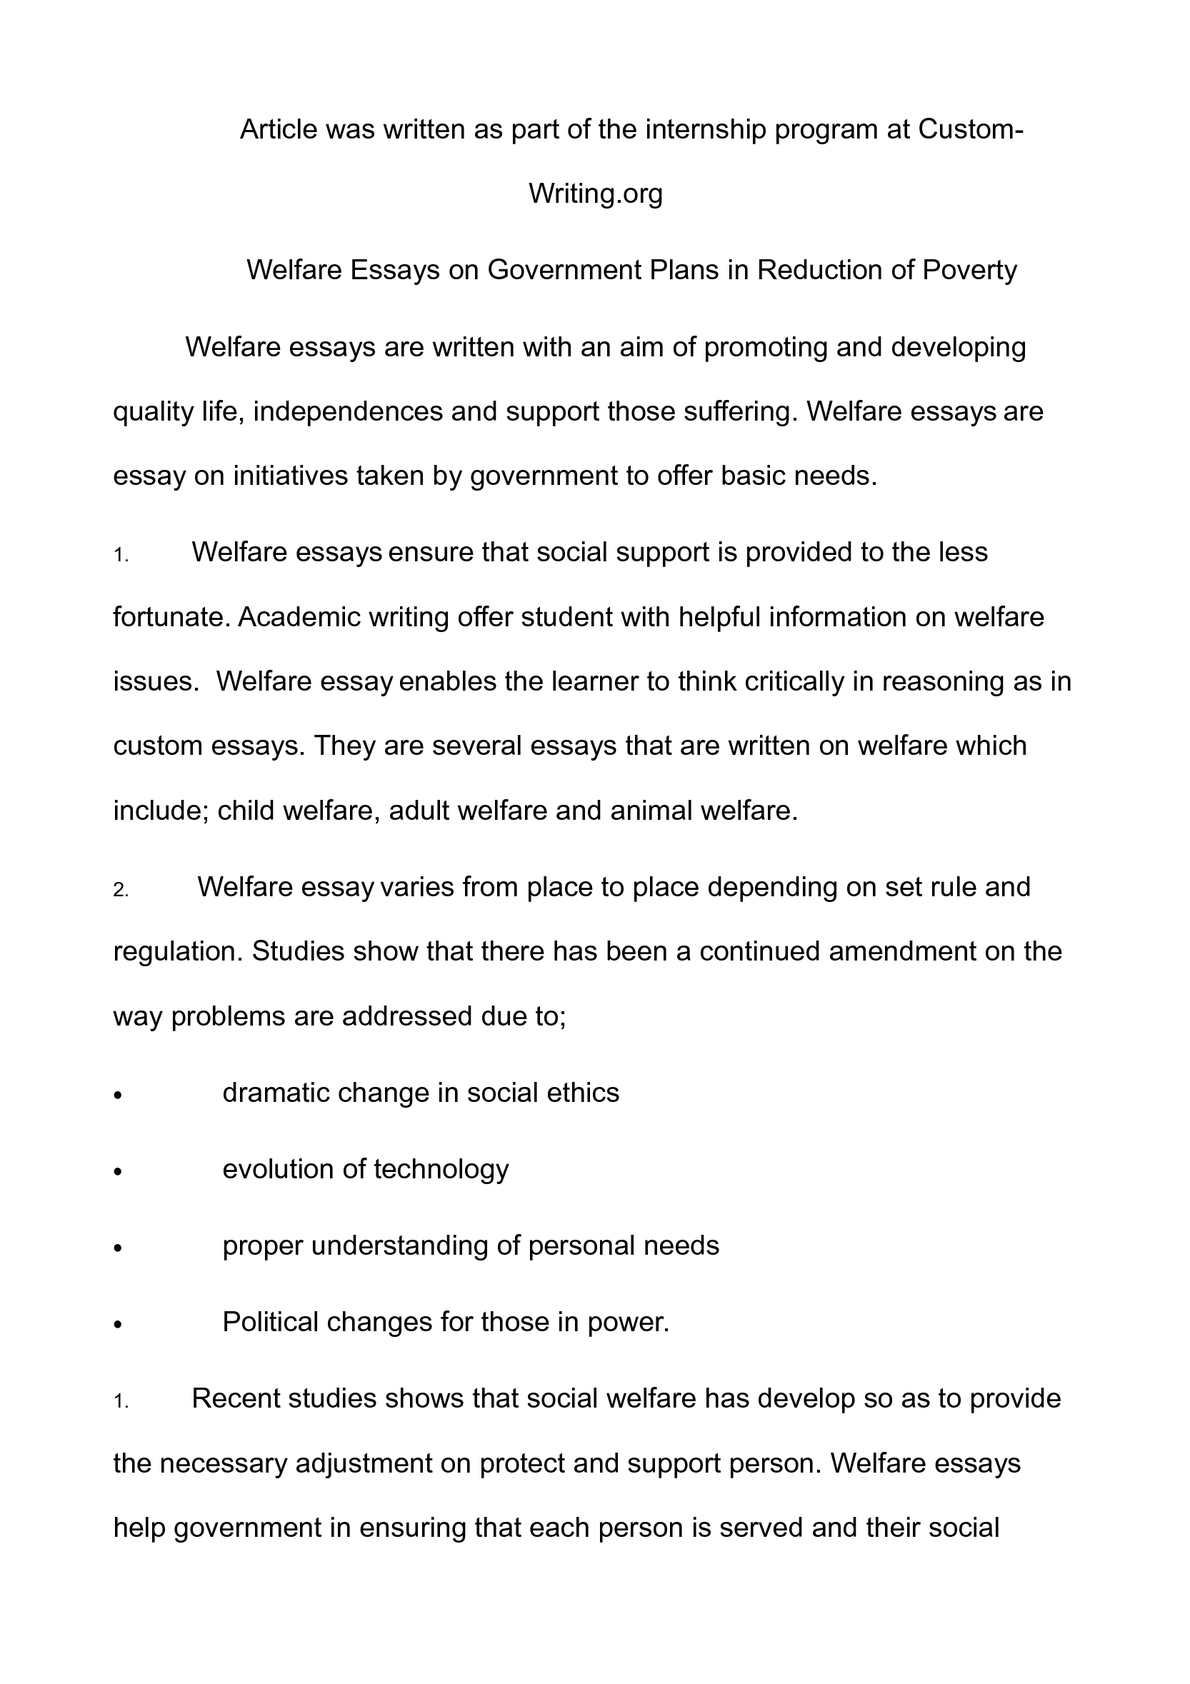 Essay About High School  Science In Daily Life Essay also Locavores Synthesis Essay Calamo  Welfare Essays On Government Plans In Reduction Of Poverty Example Of A Good Thesis Statement For An Essay